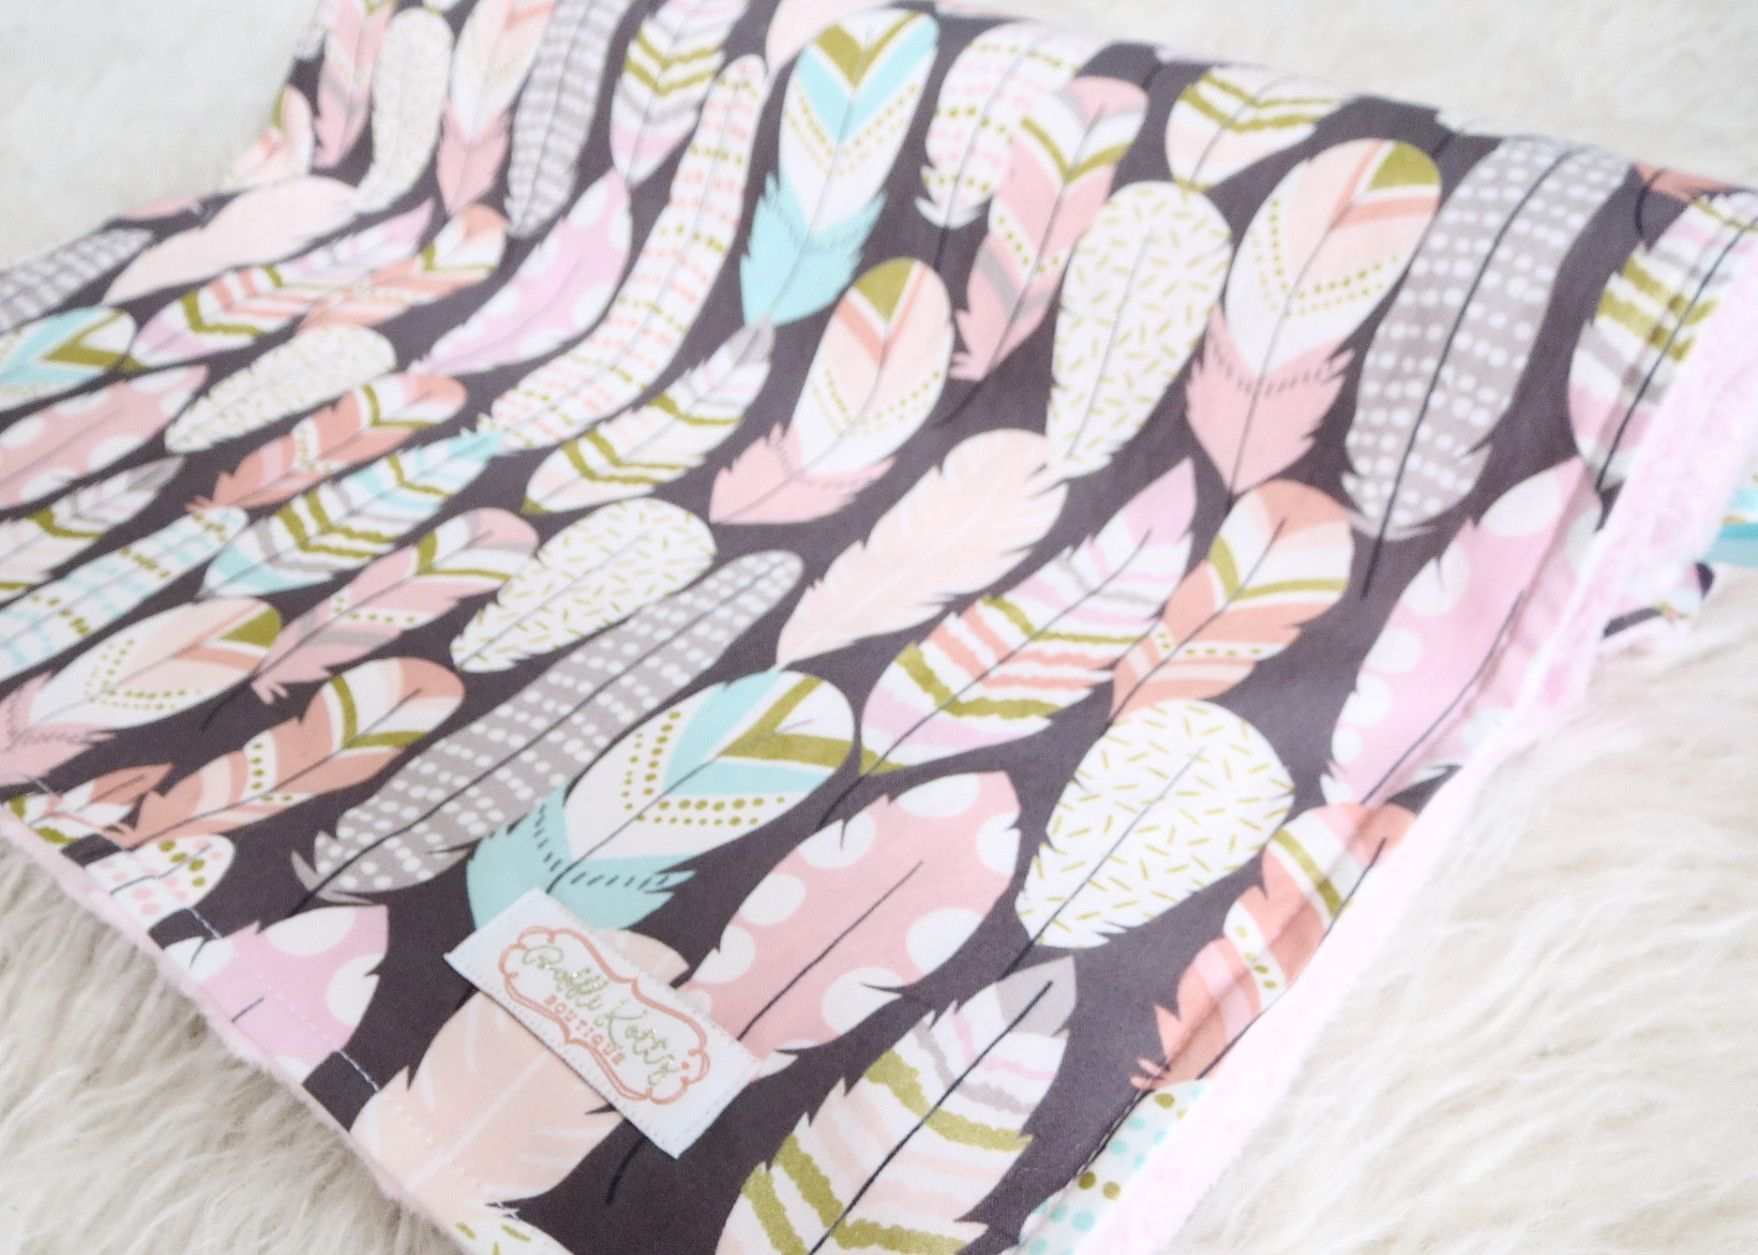 Baby girl is sure to snuggle with this feather baby blanket for years to come. Super stylish and modern pink minky blanket with feathers is a great addition to the nursery. This minky blanket is super